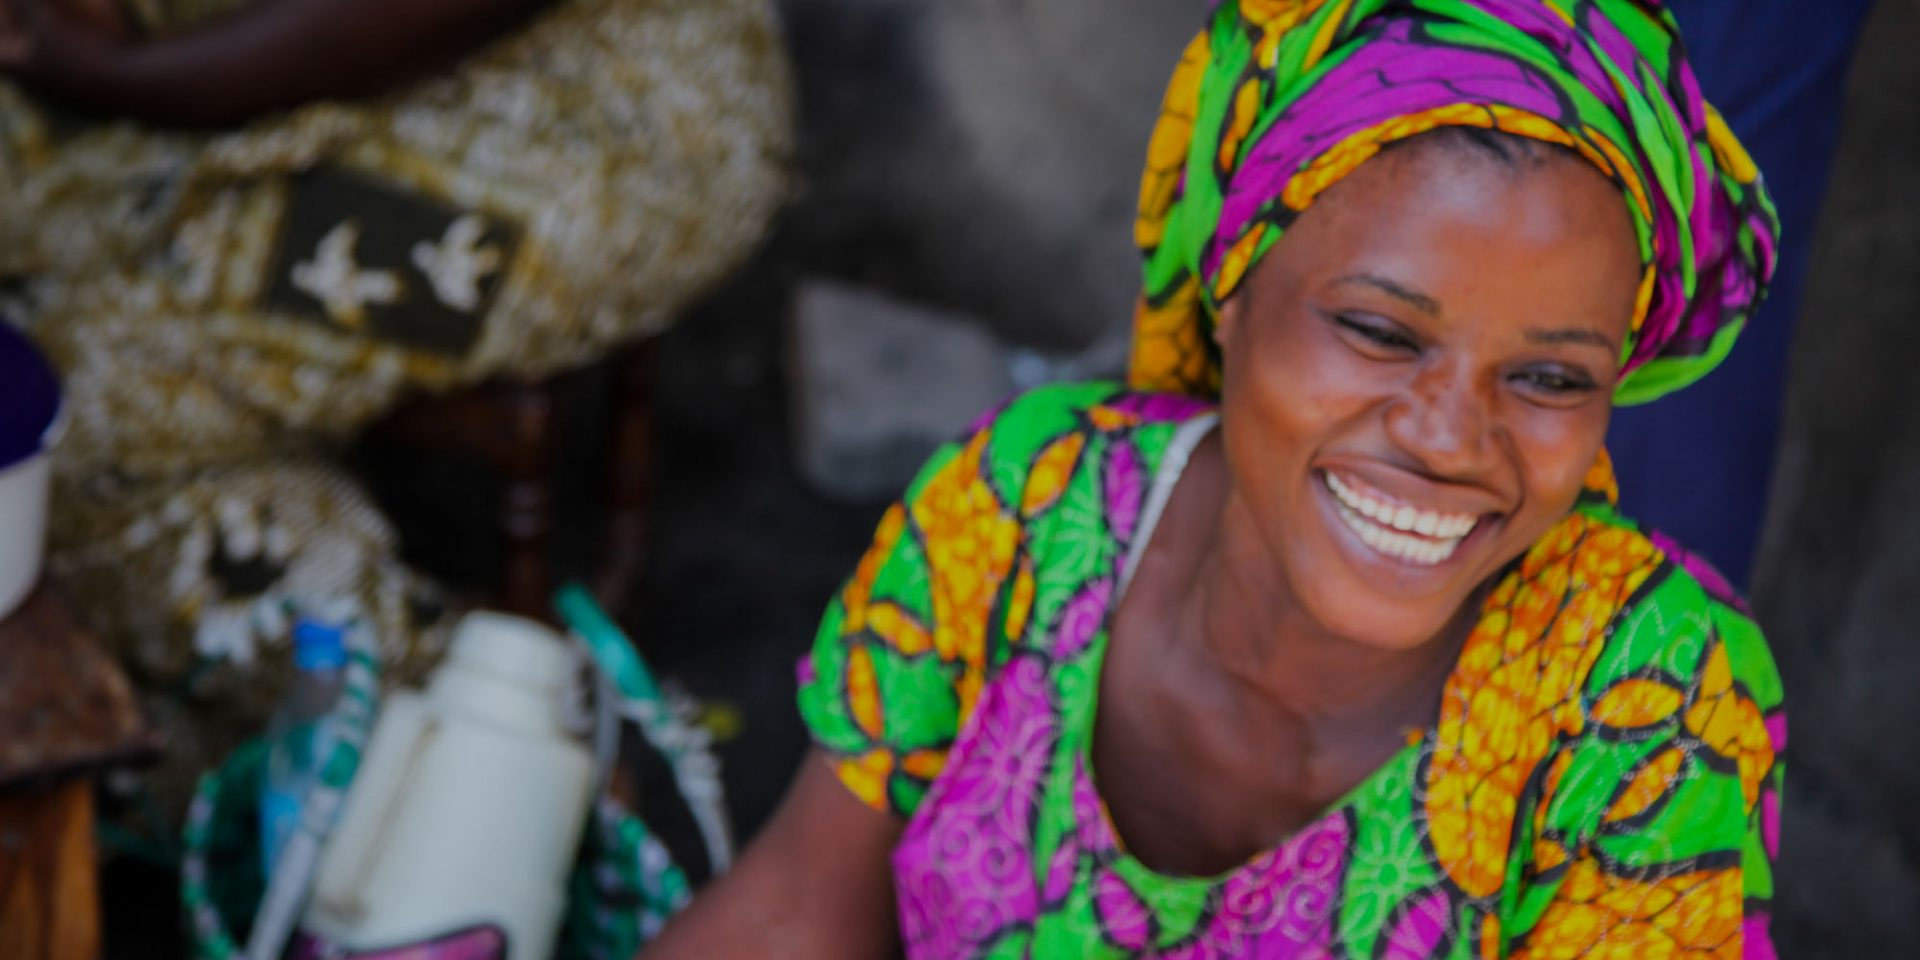 Brightly dressed women shows her smile